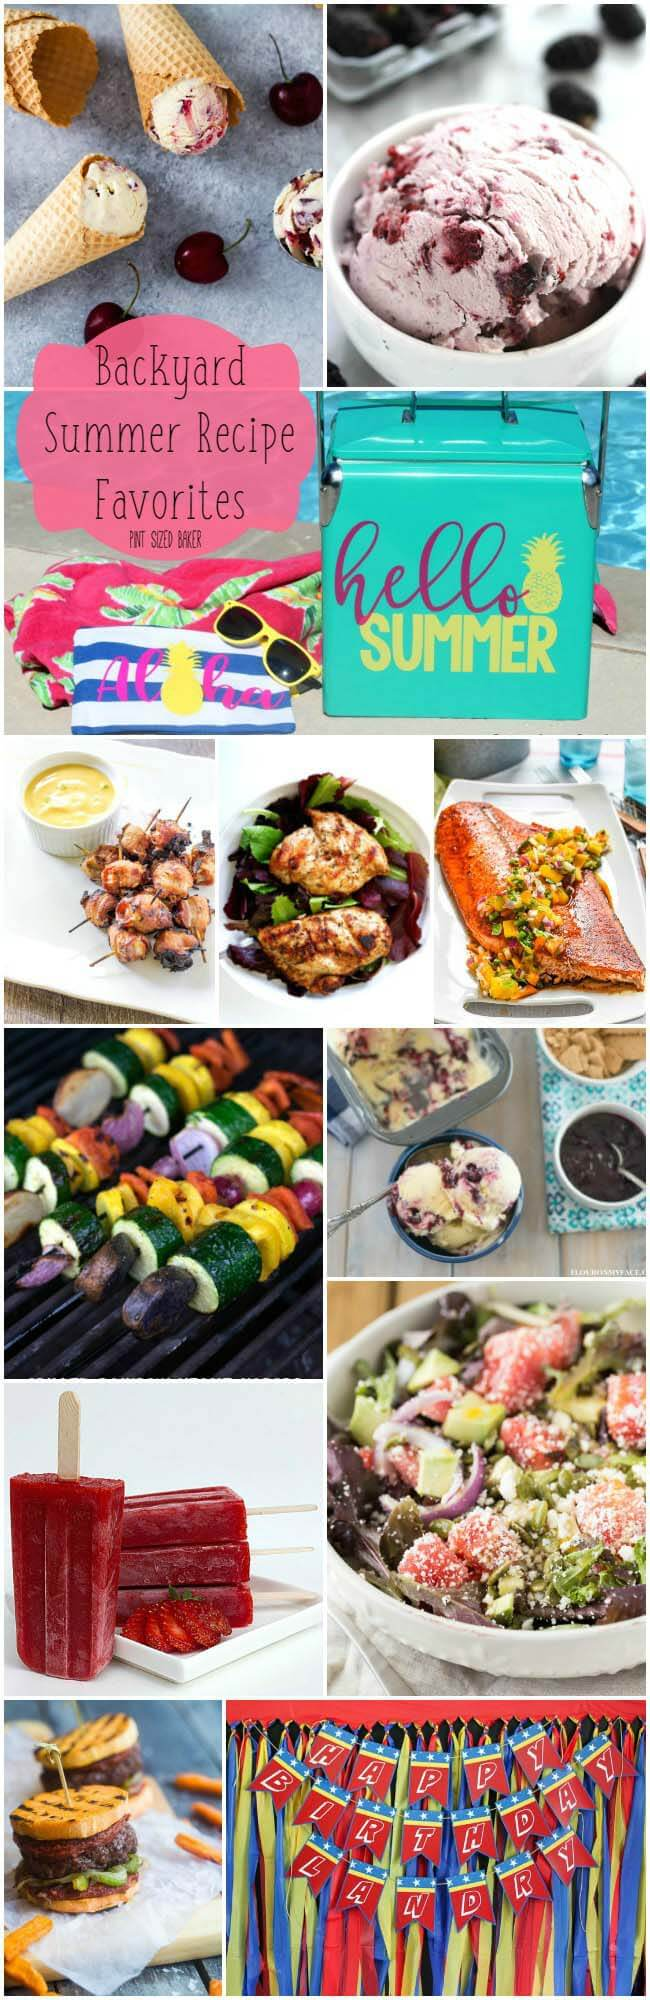 Get outside with the family and enjoy these Backyard Summer Recipe Favorites! Homemade ice cream, Grilled chicken, burgers and salmon, and some fun summer party decor.